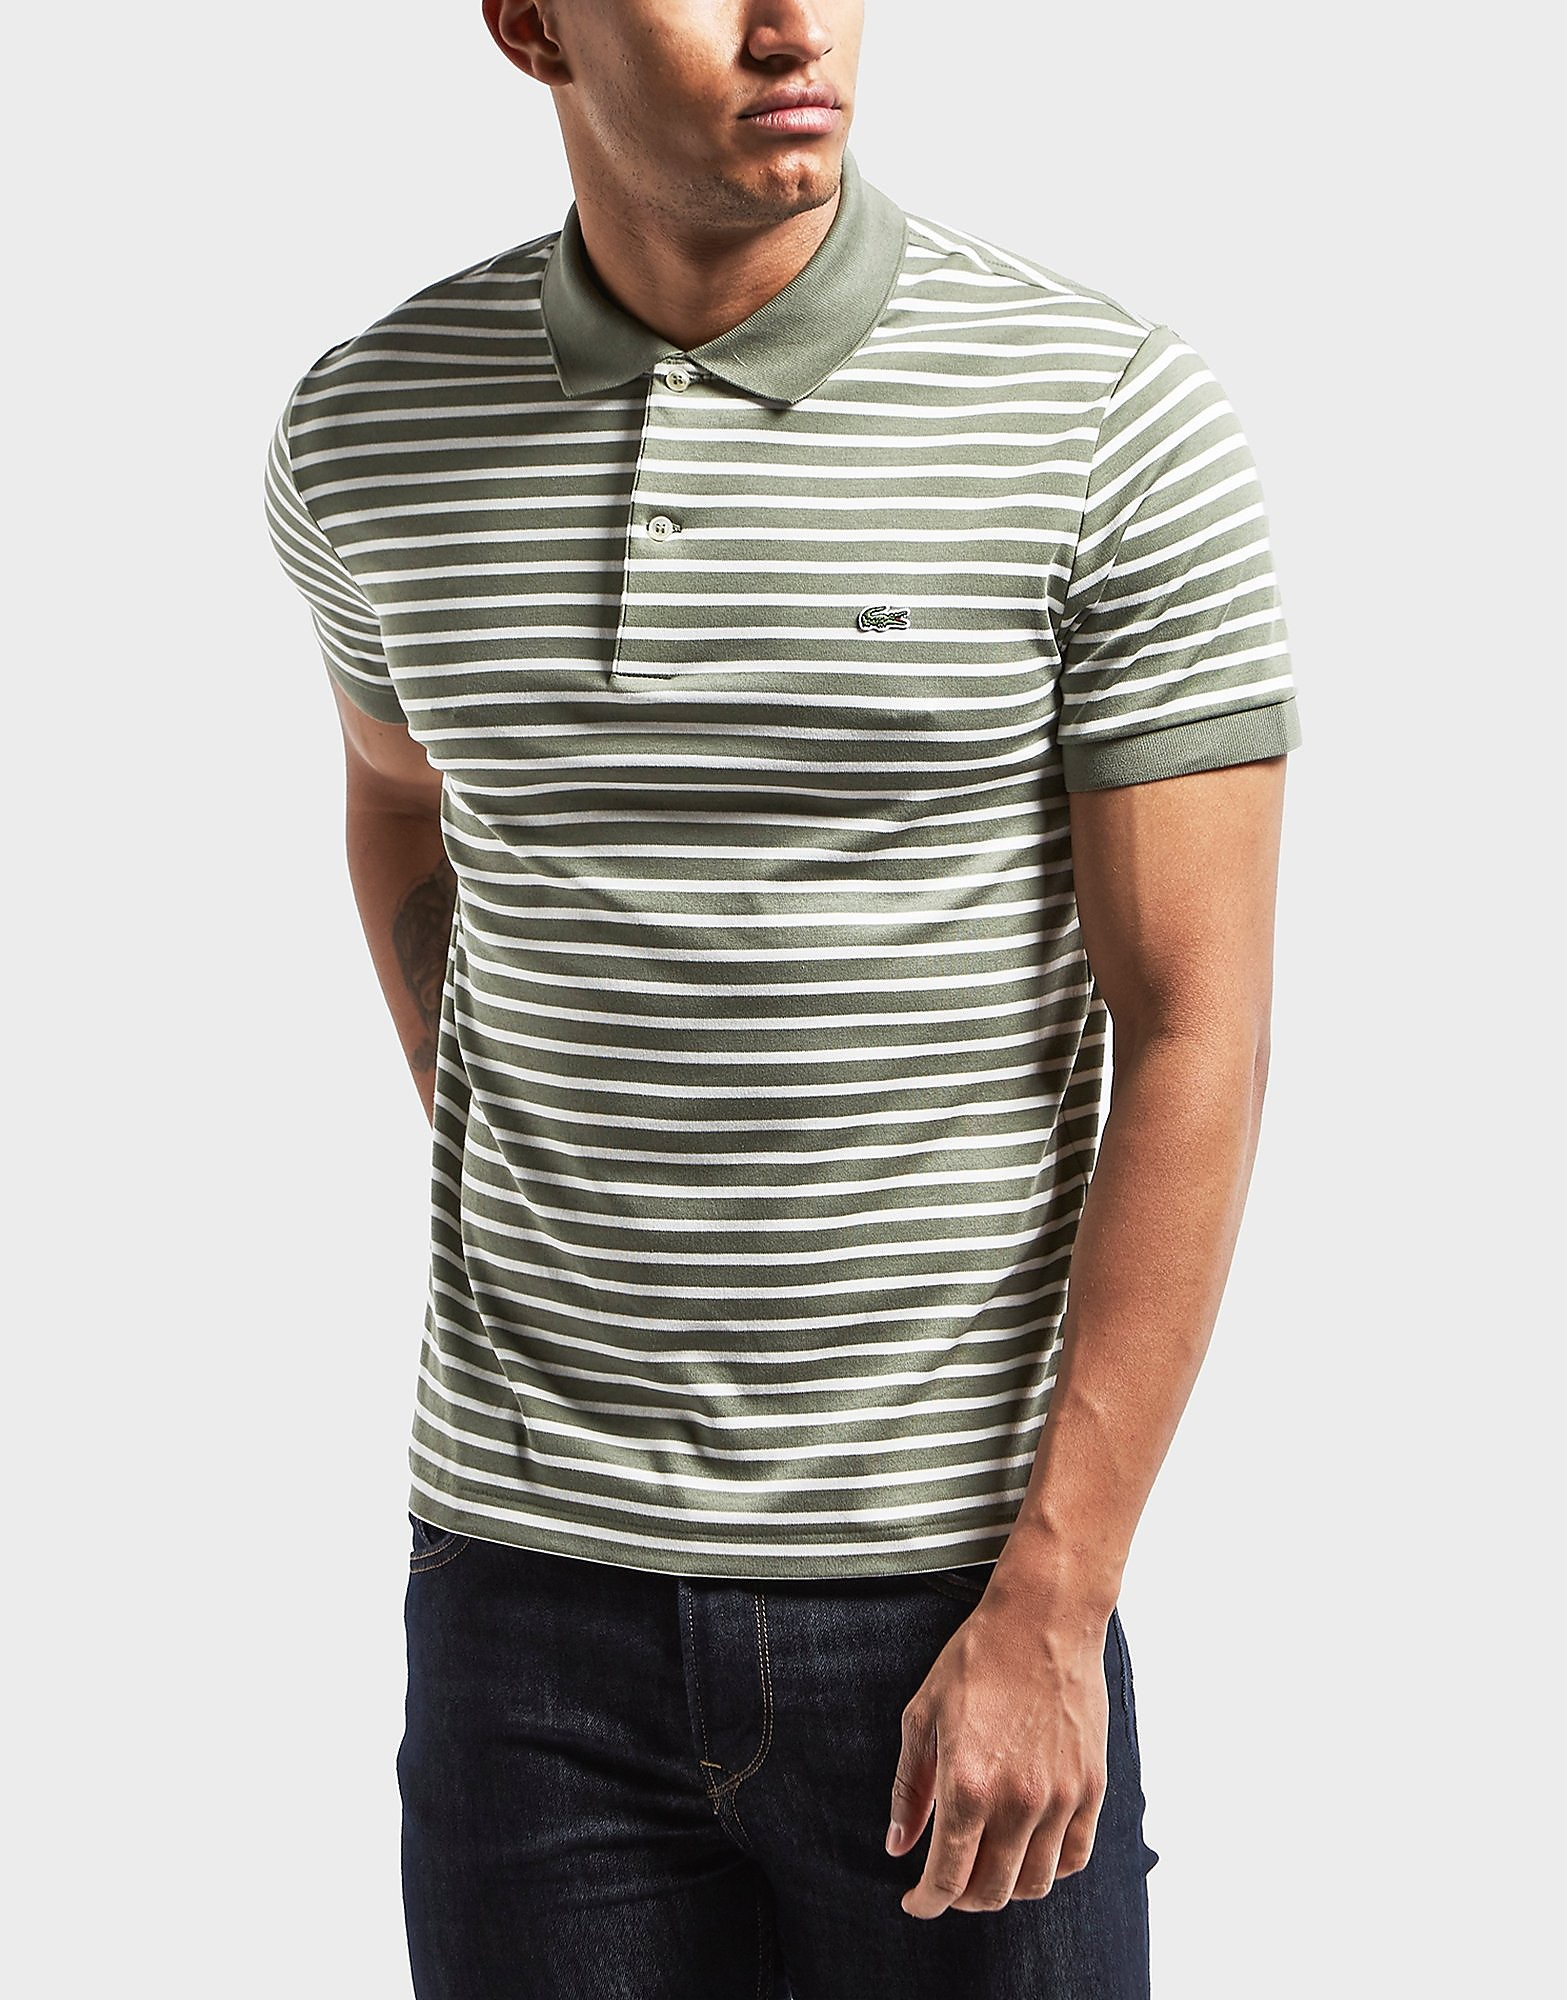 Lacoste Horizontal Stripe Polo Shirt